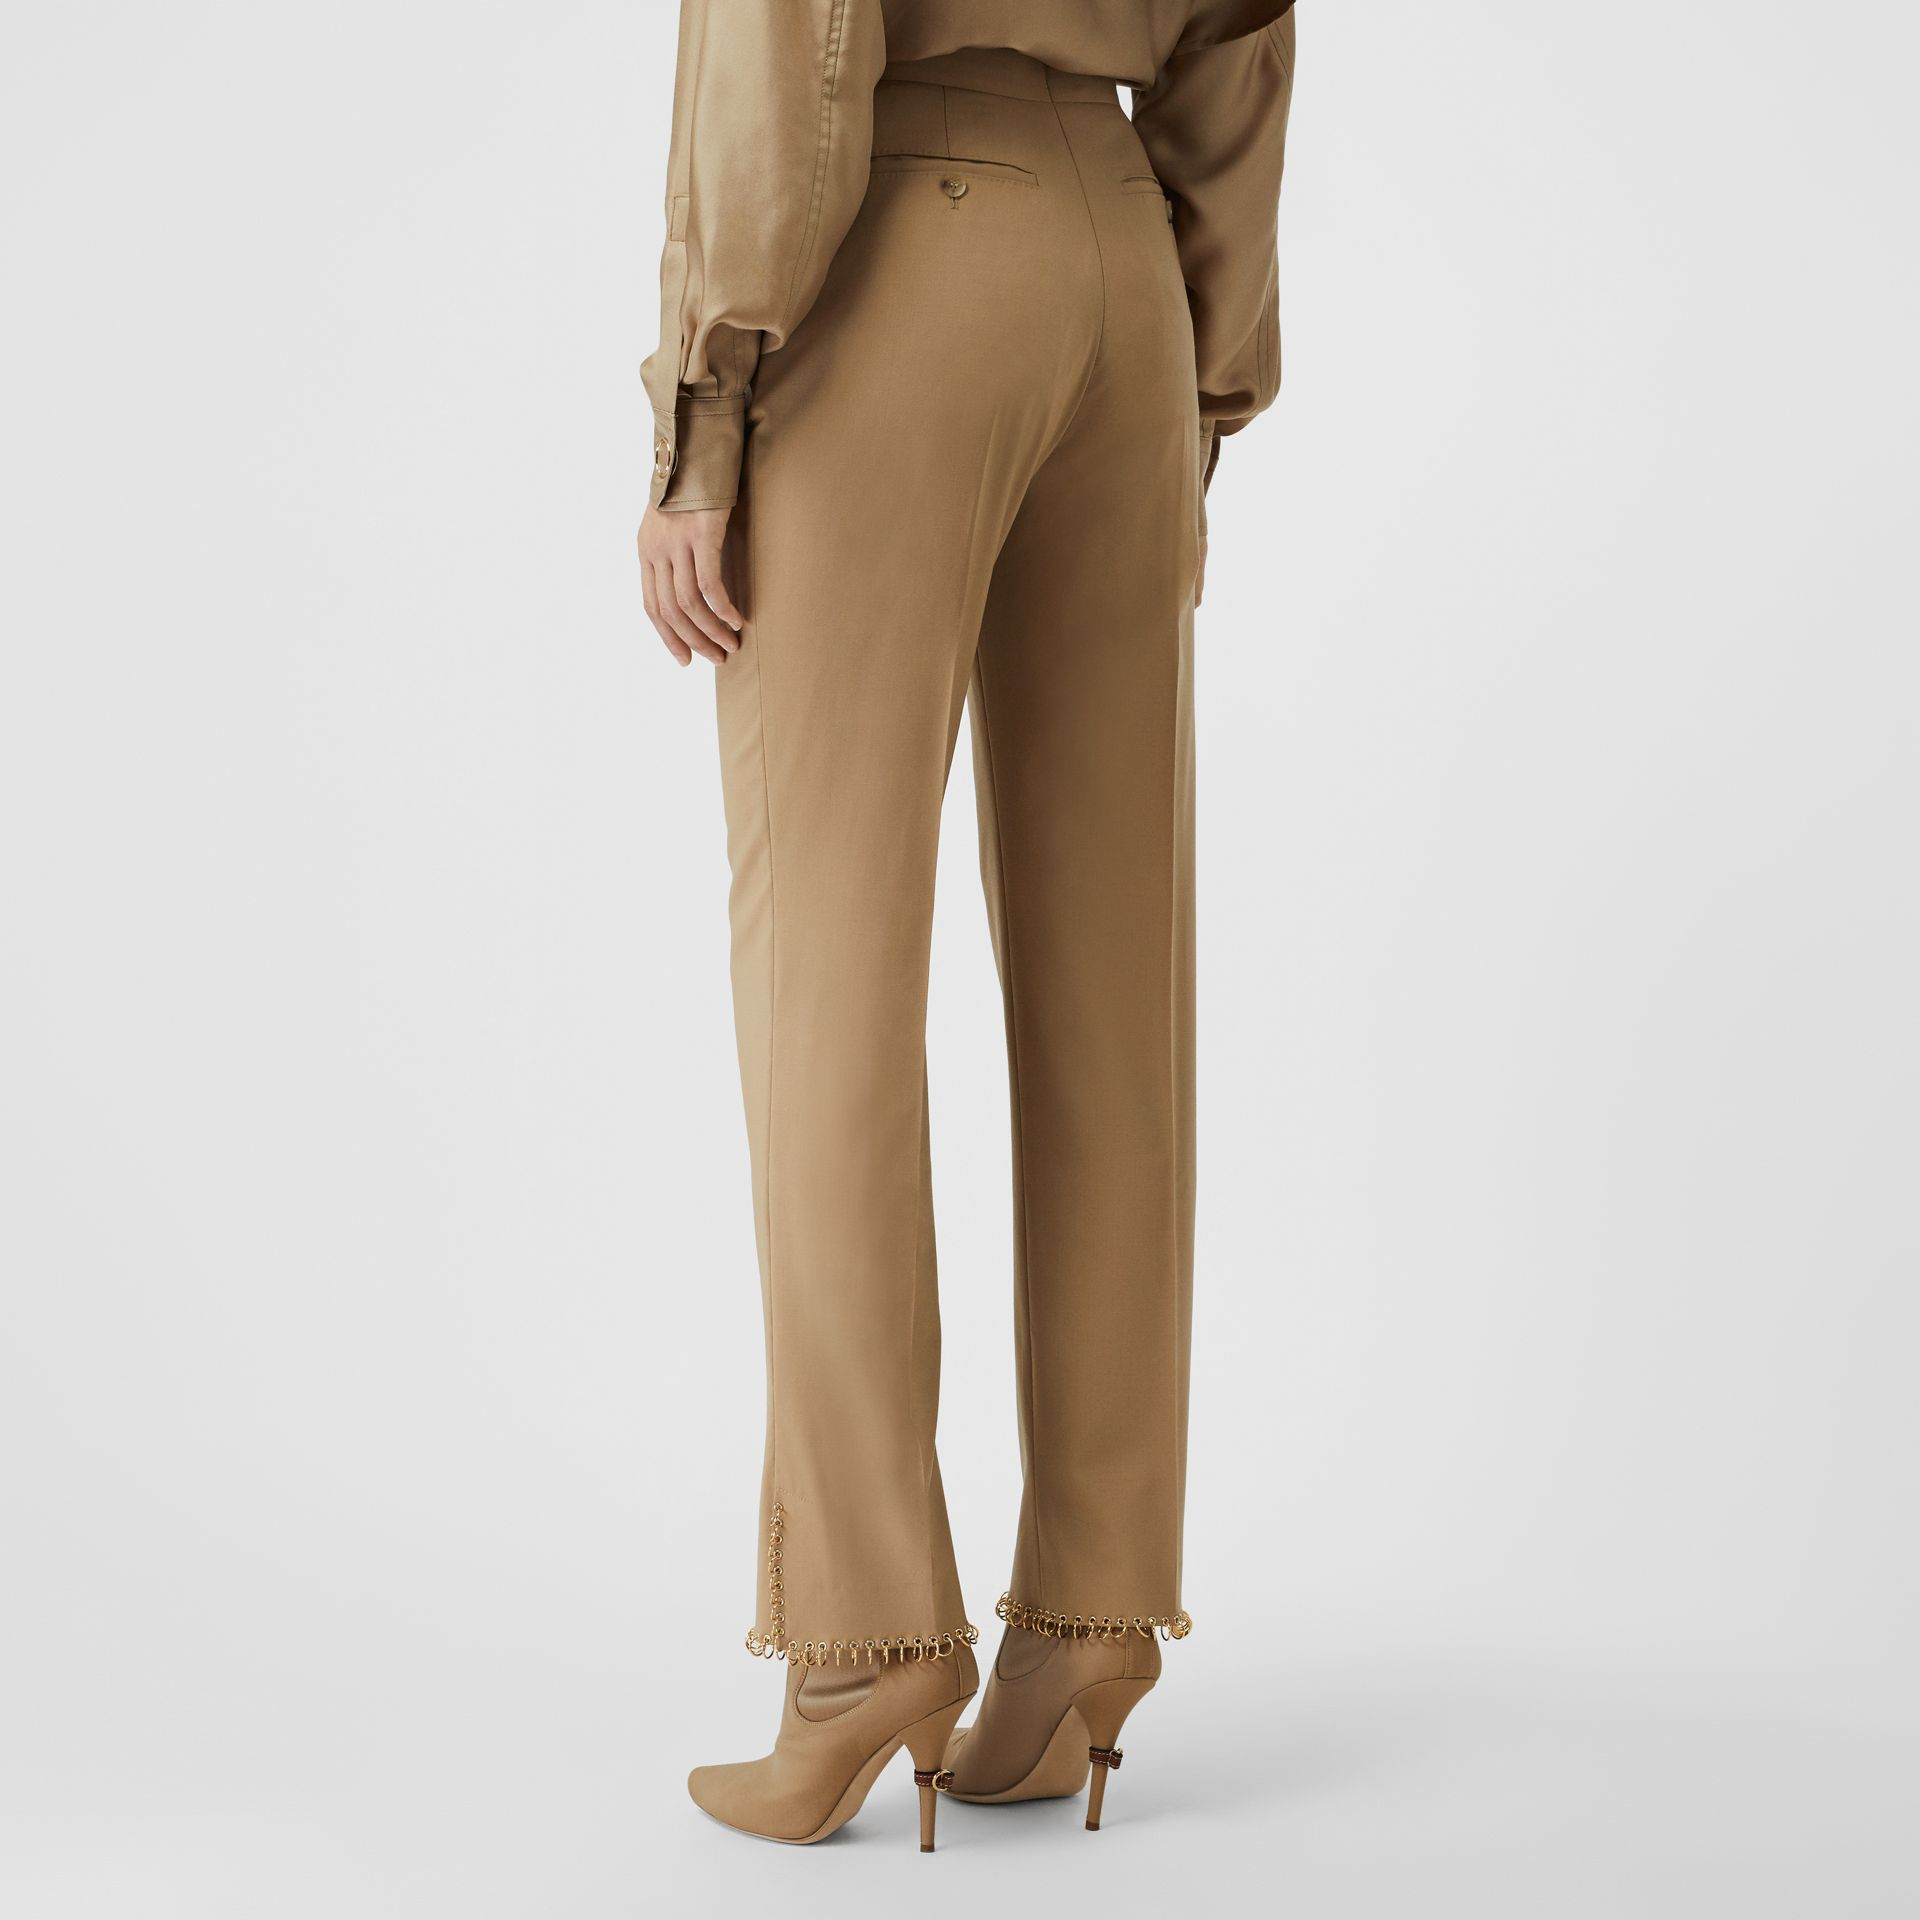 Pantalon en laine avec piercings (Miel) - Femme | Burberry - photo de la galerie 2